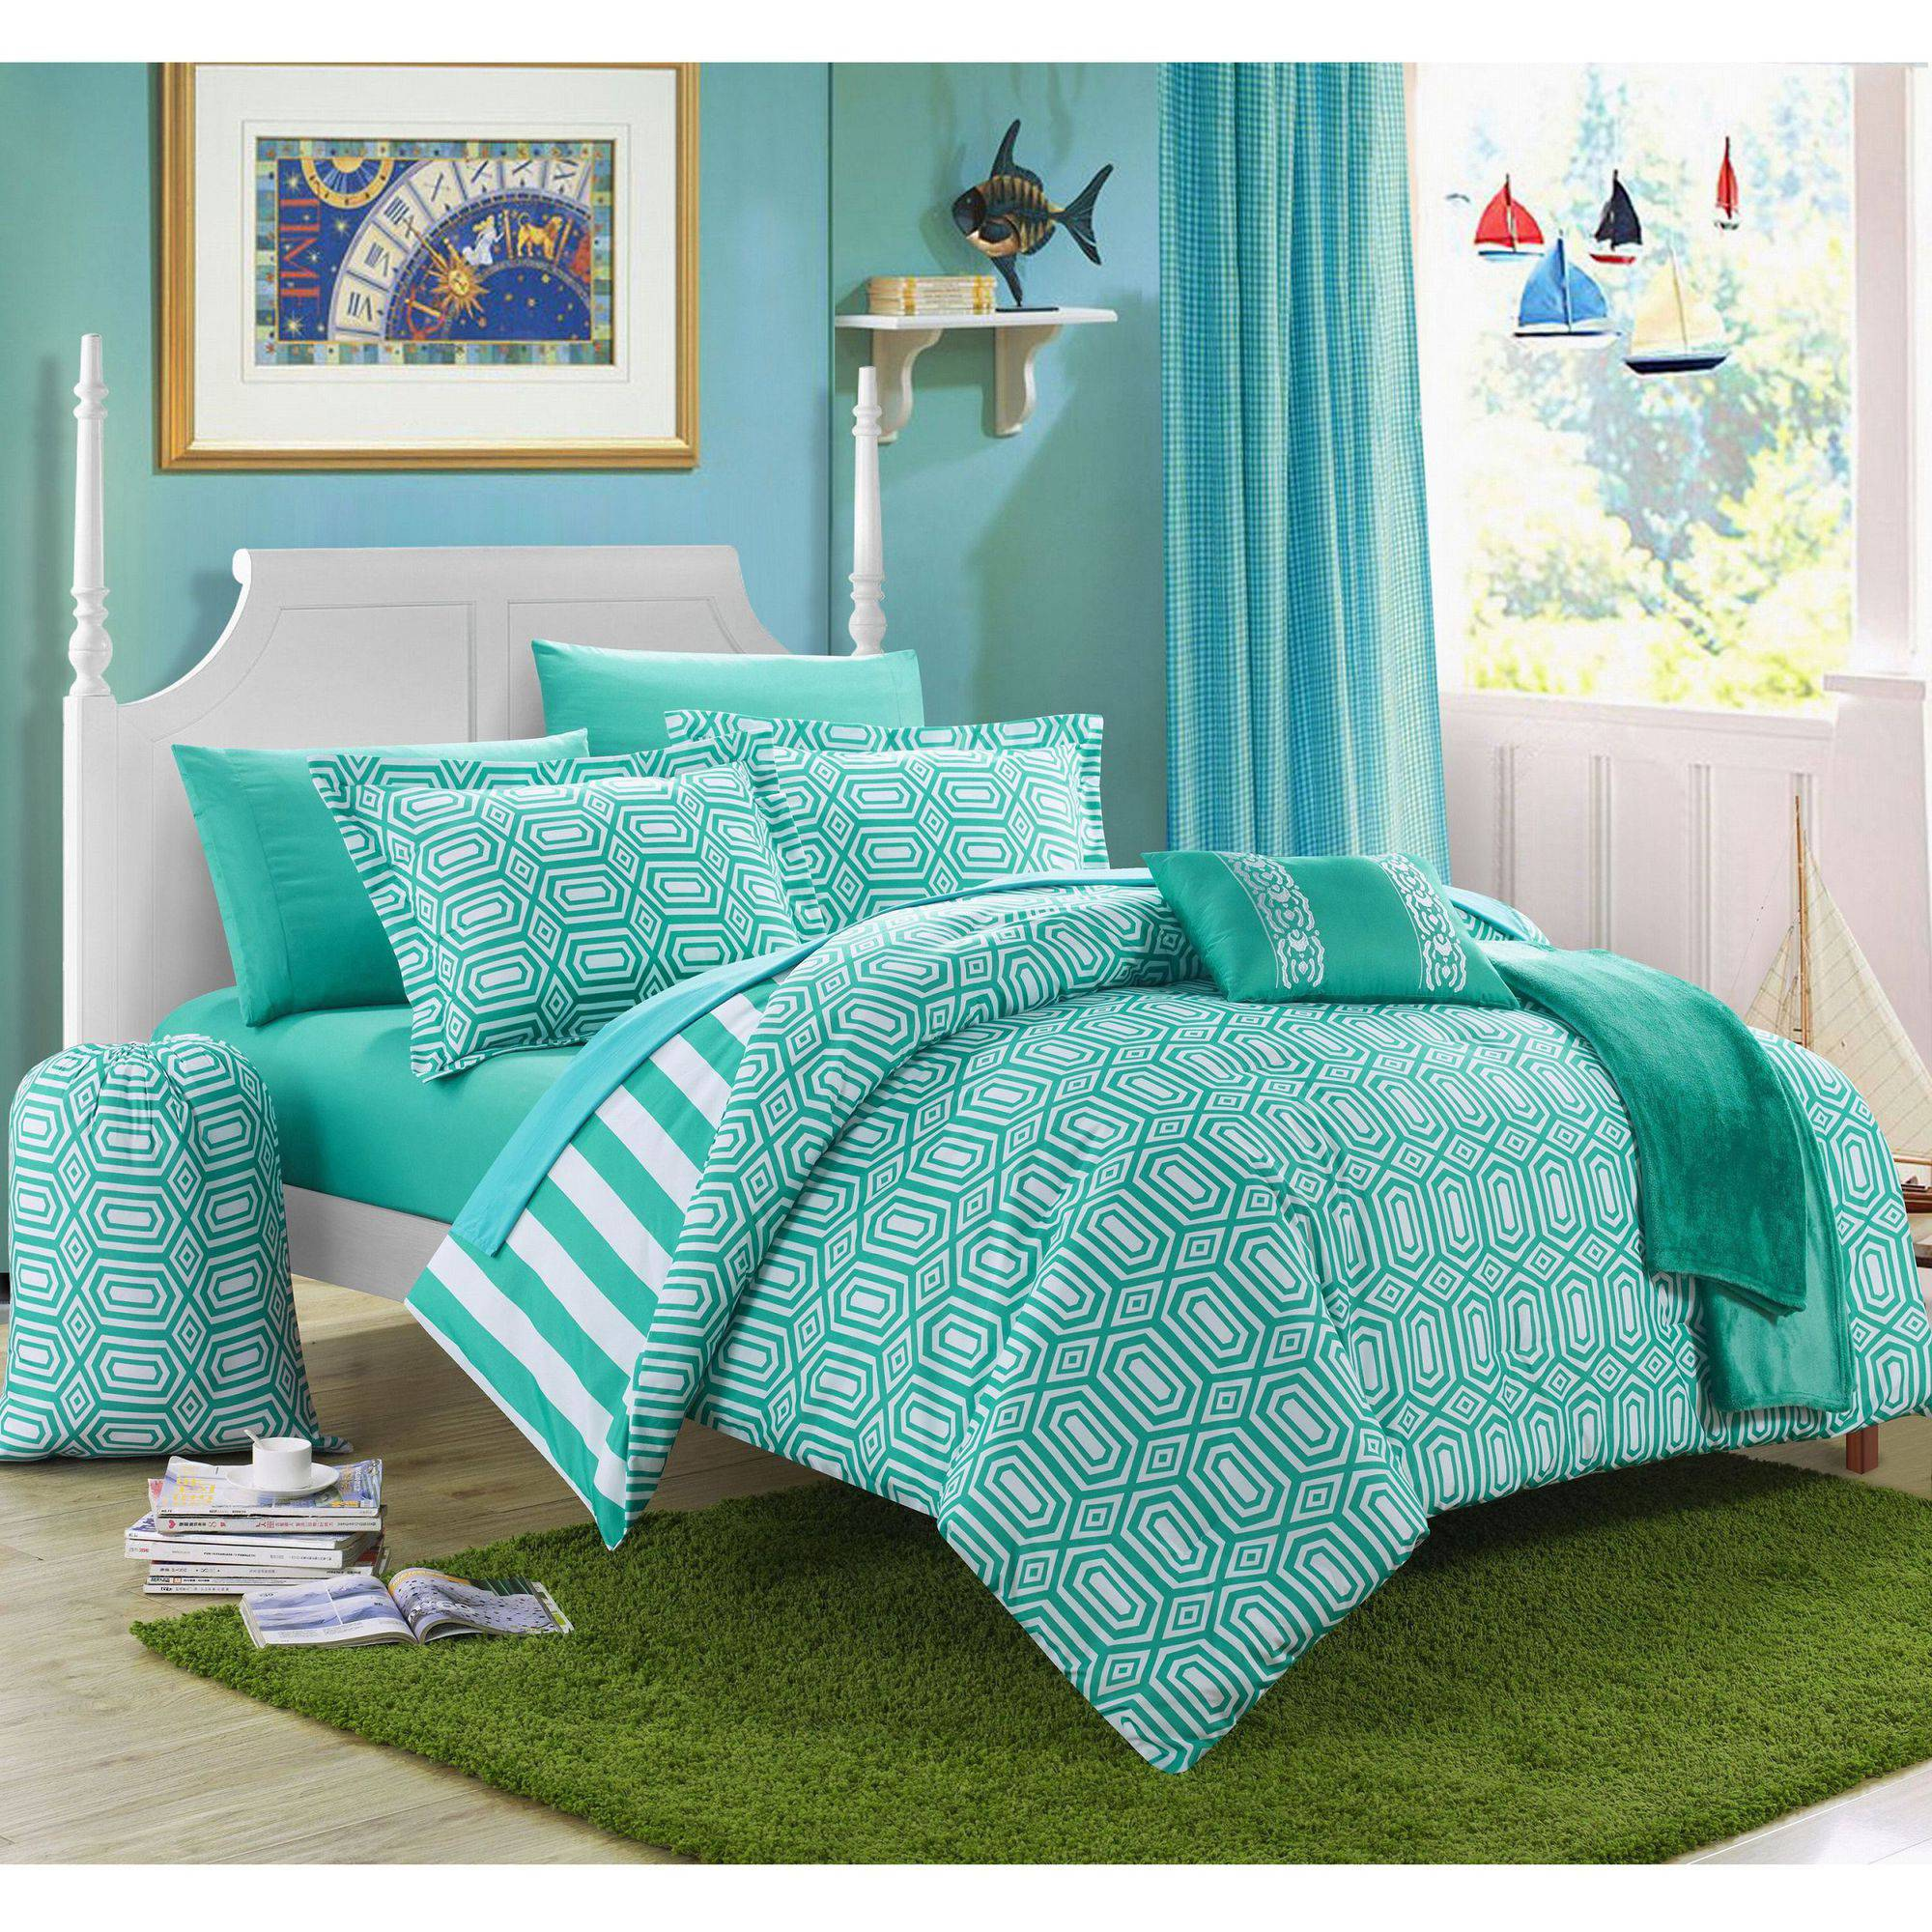 Chic Home 10-Piece Nantes Geometric and Striped Printed Reversible Comforter Set